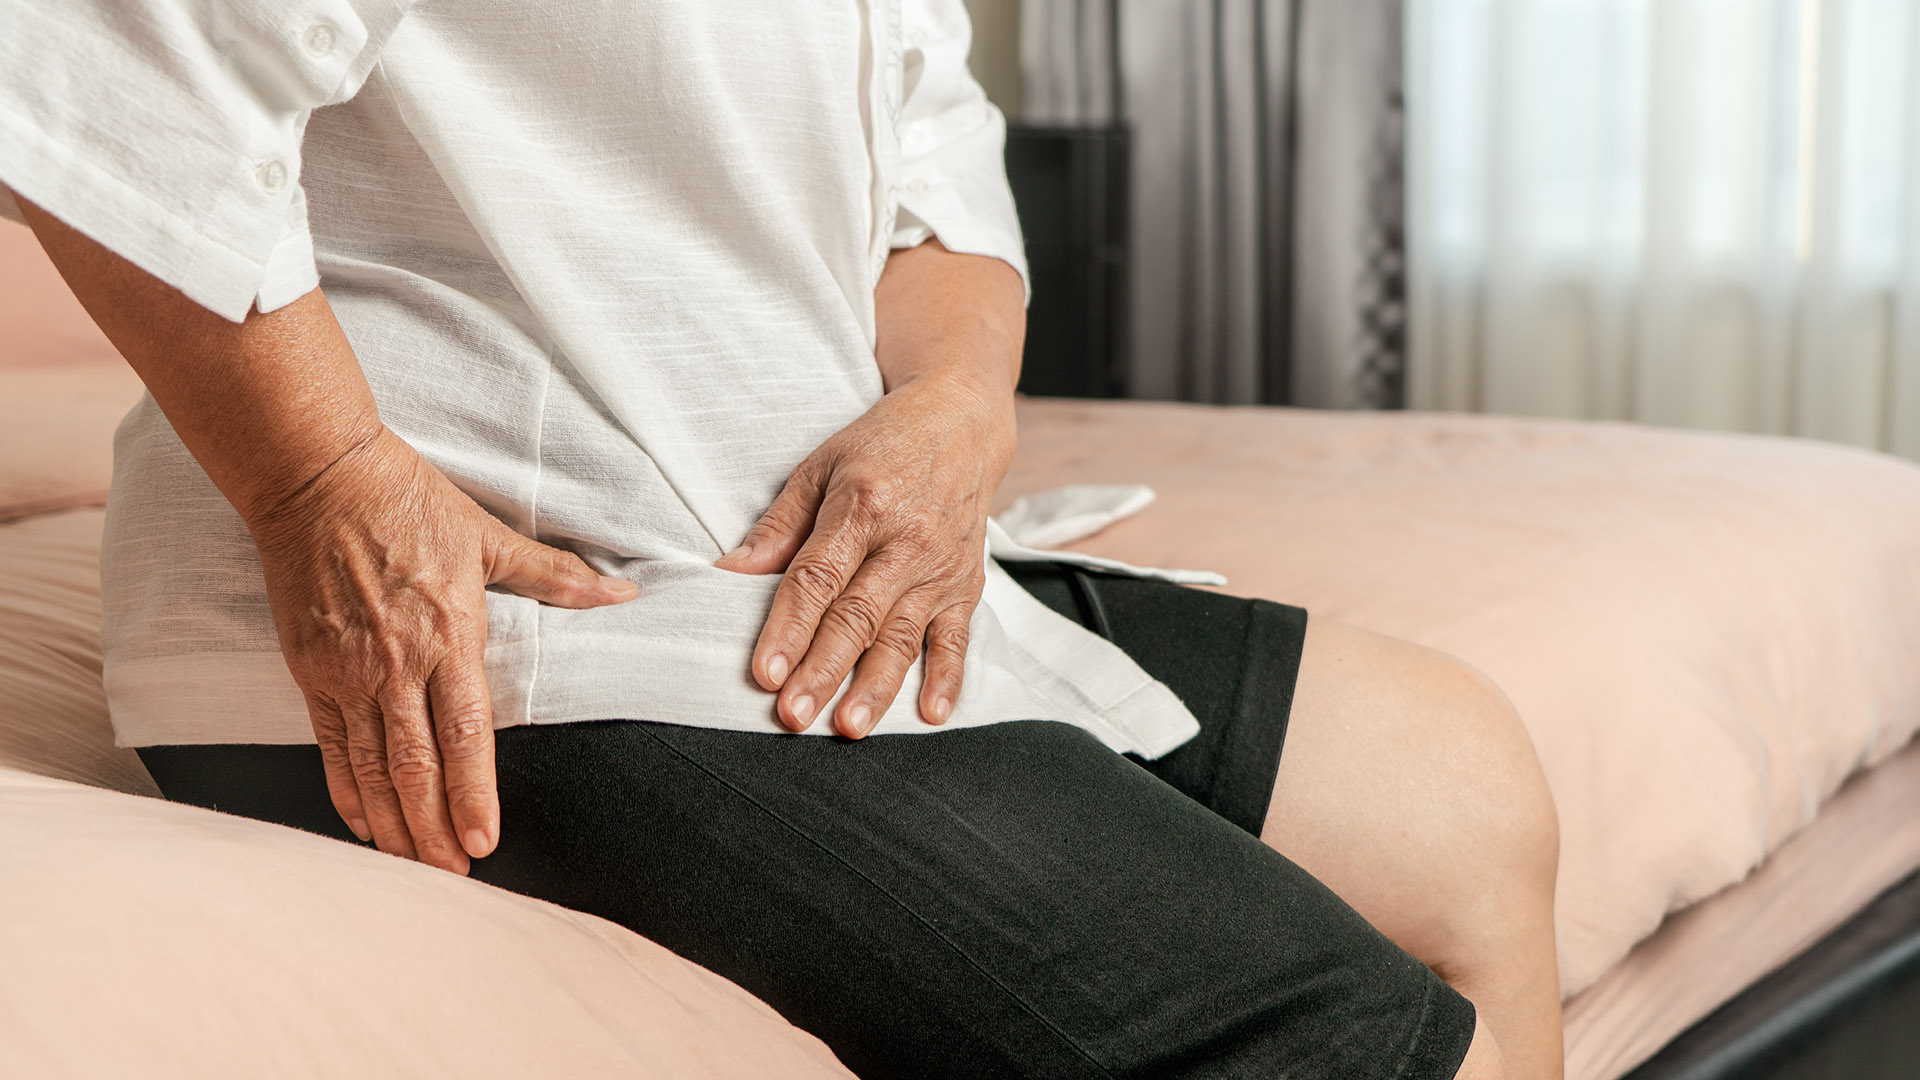 5 Ways To Avoid Hip Fractures as You Get Older